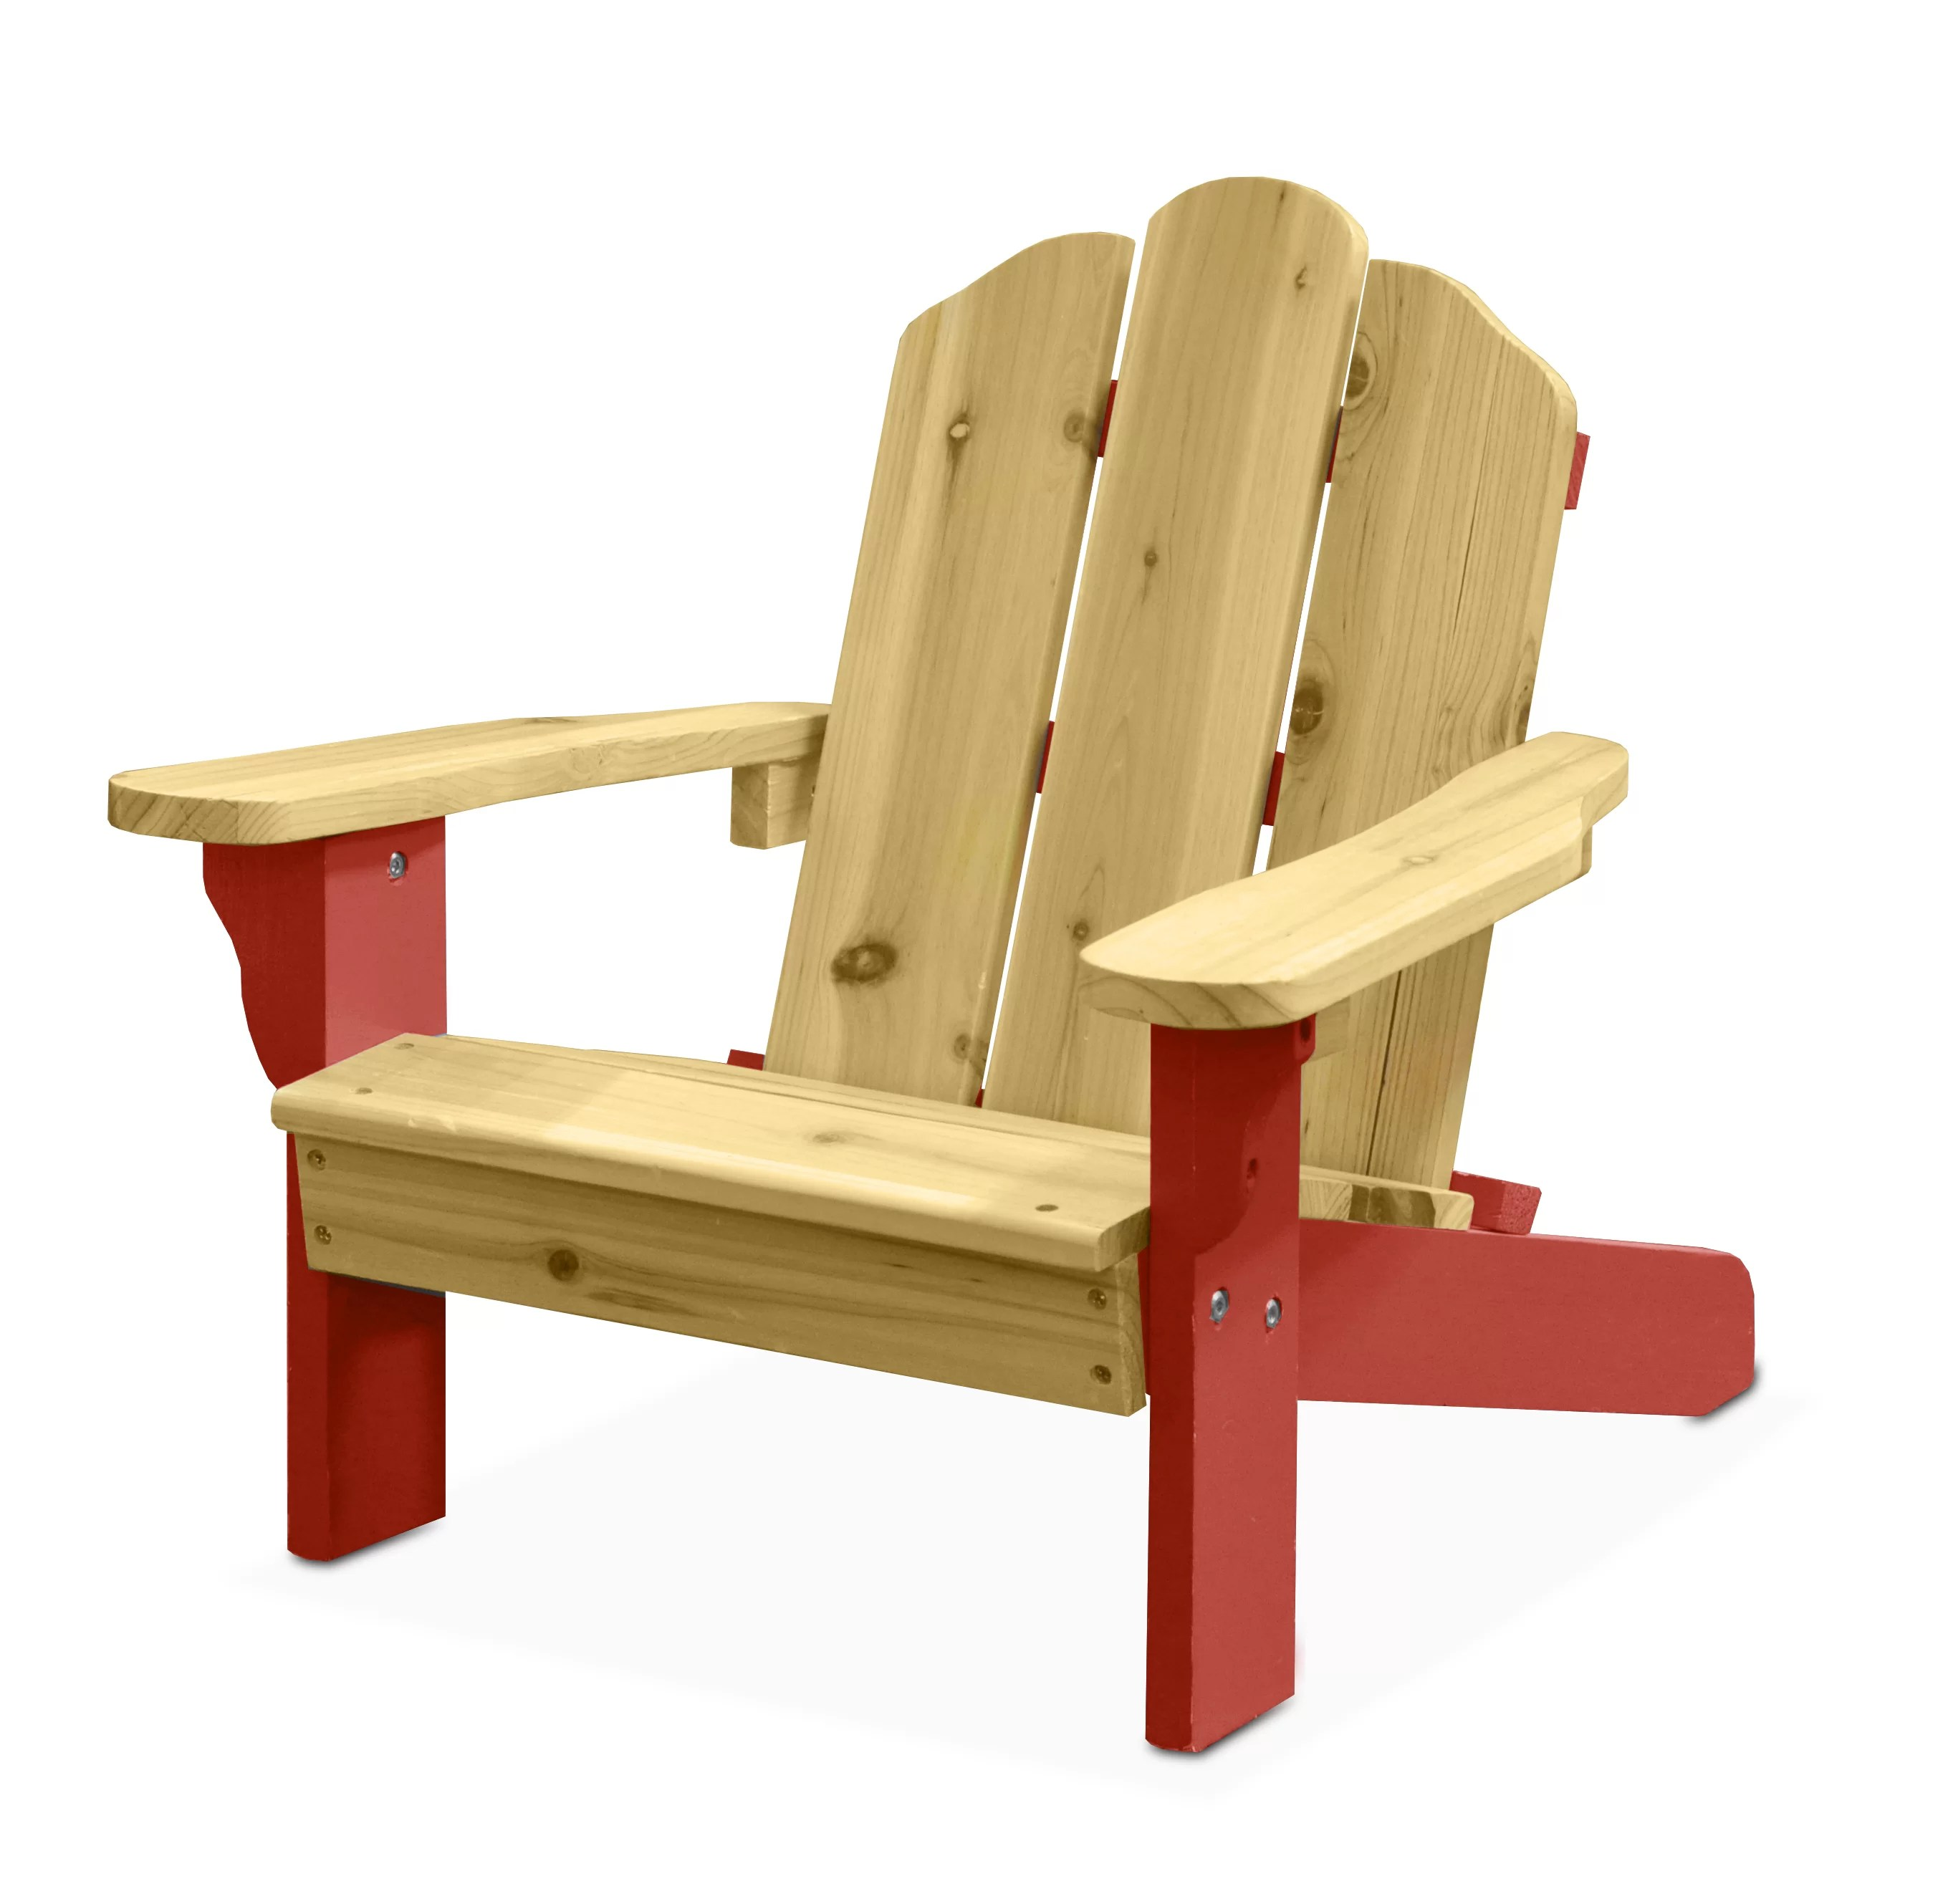 Plastic Kids Chairs Garett Kids Plastic Adirondack Chair